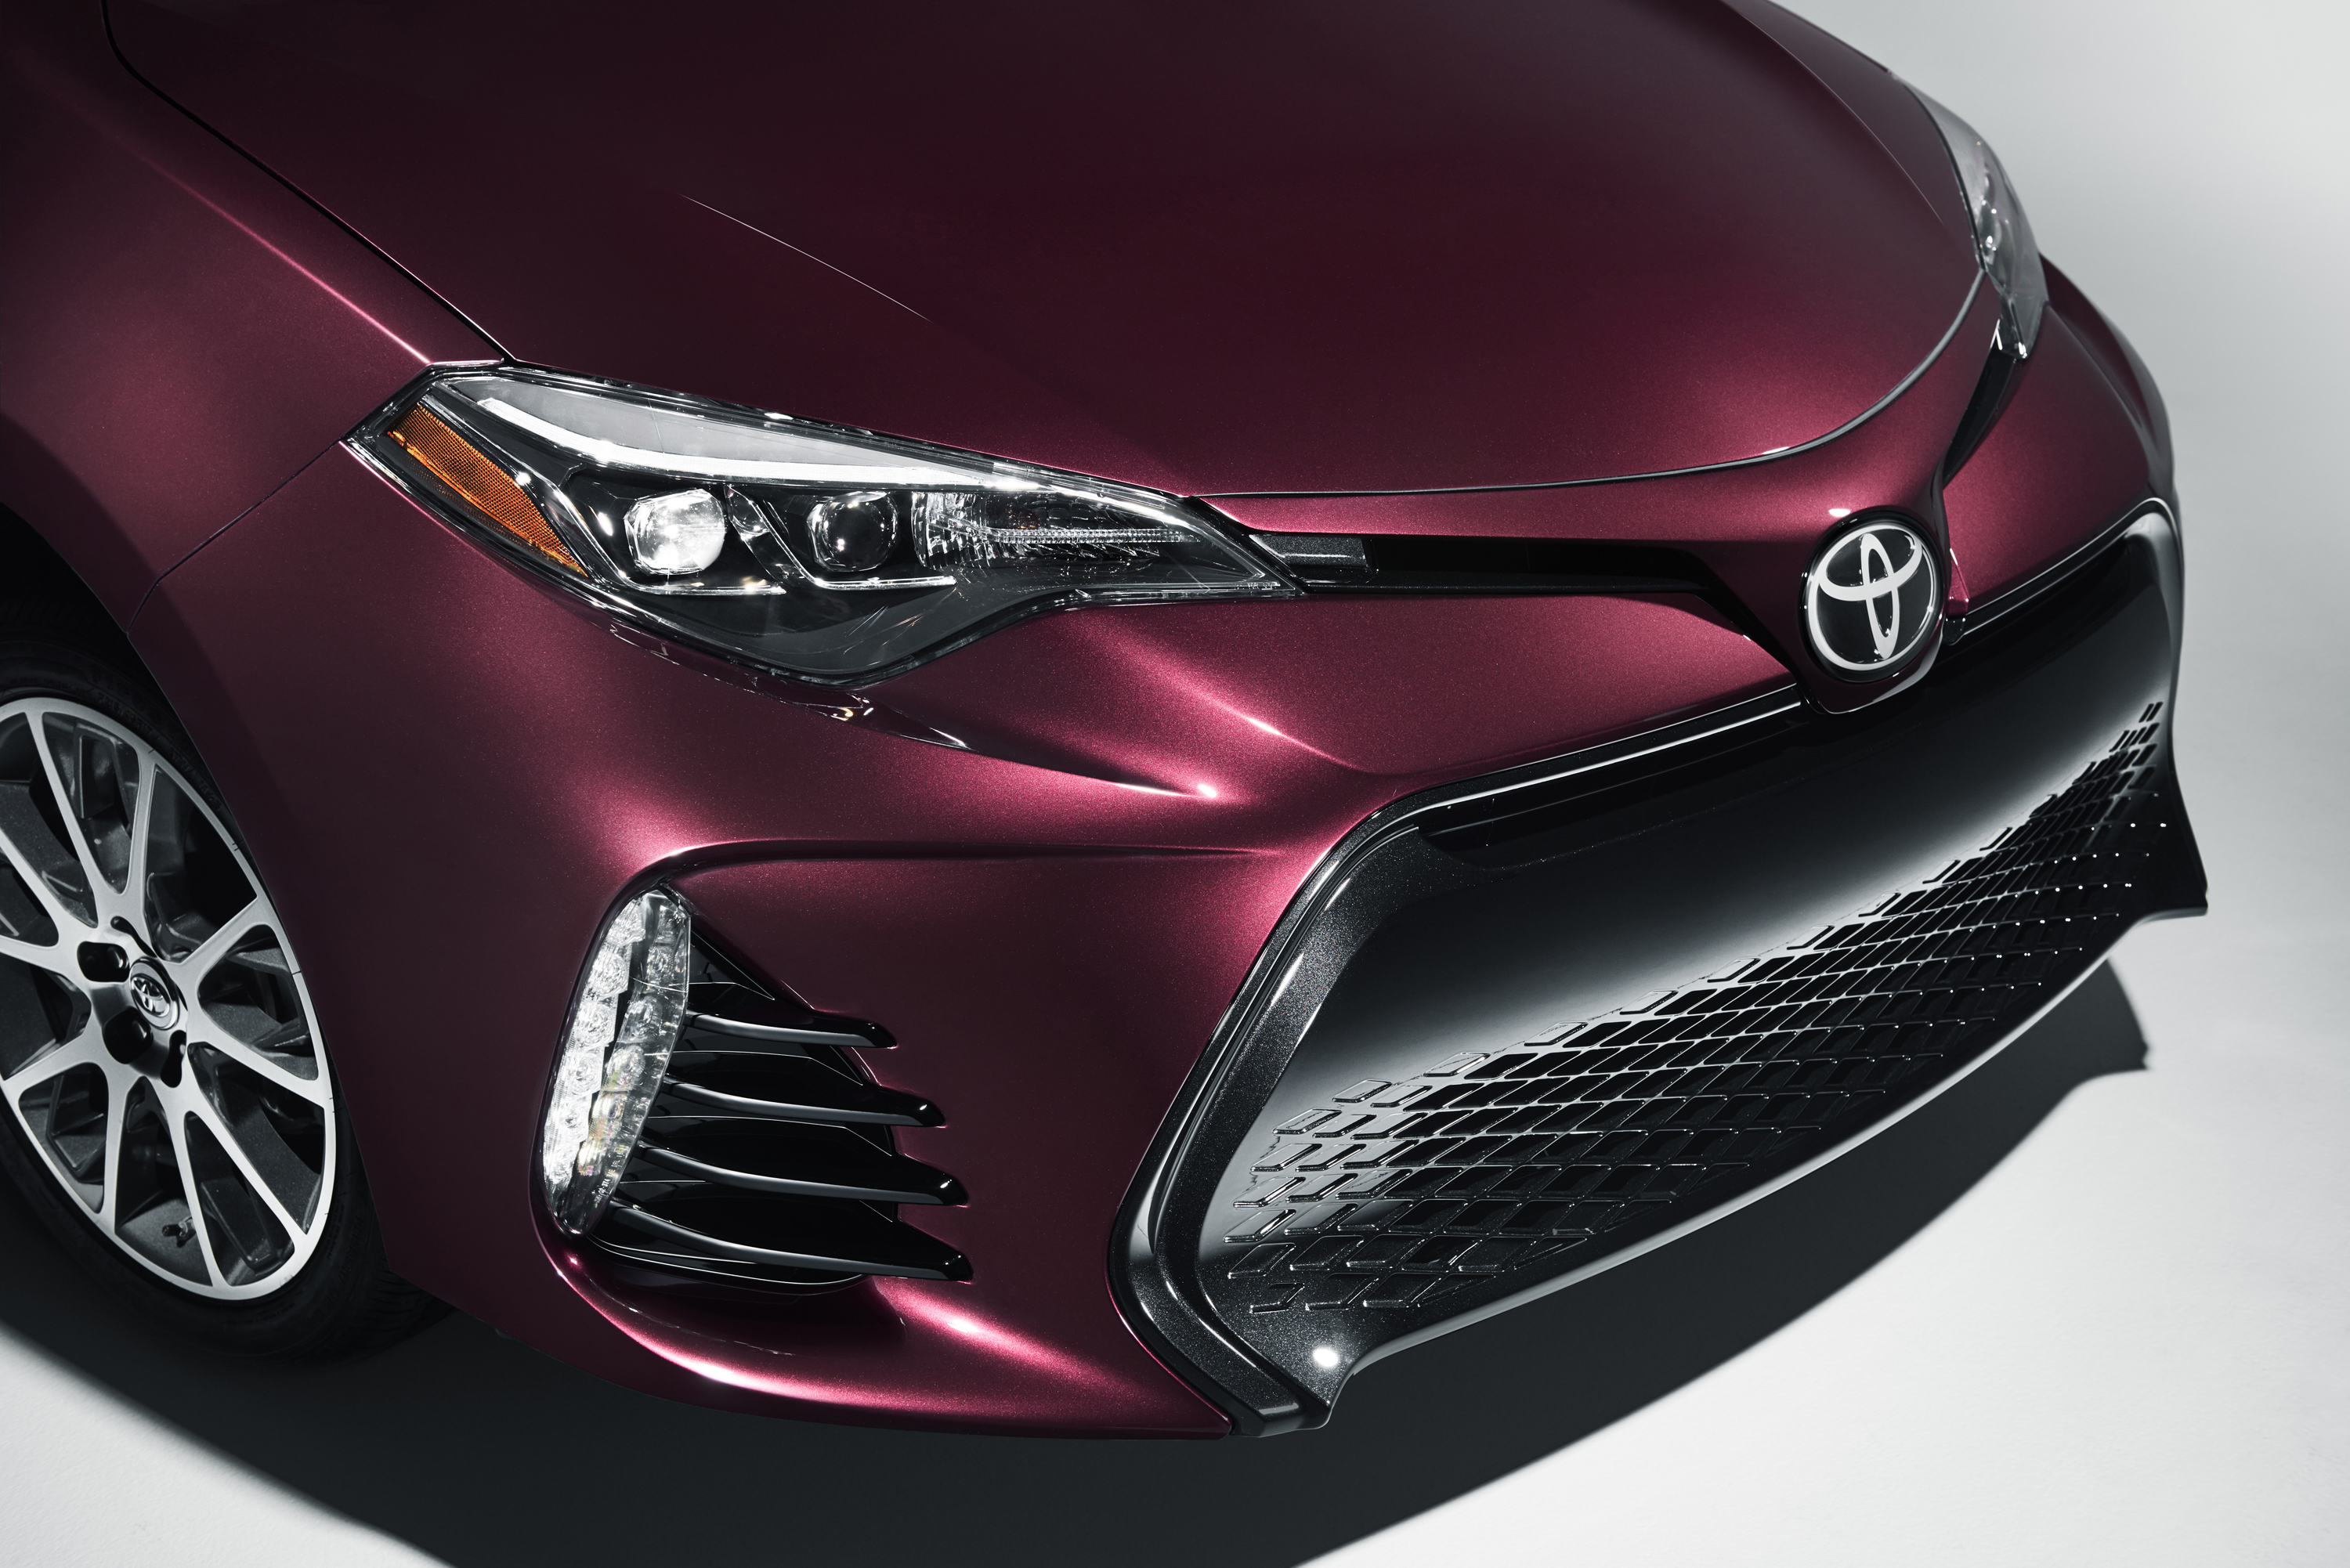 2017 Toyota Corolla Facelift For North America Revealed Plus A 50th Anniversary Special Edition Image